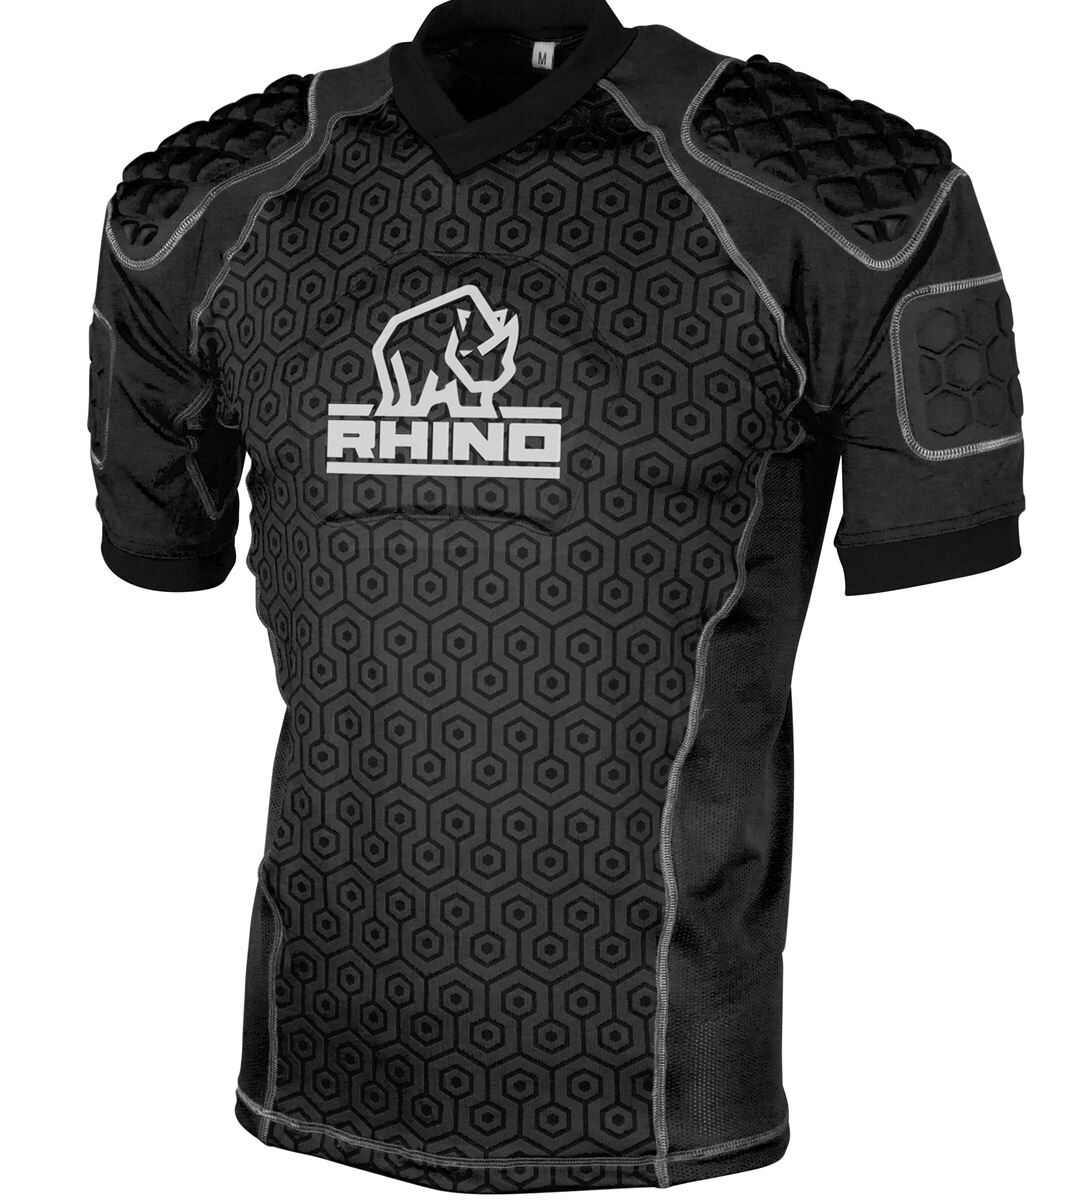 Rhino Pro Rugby Body Protection